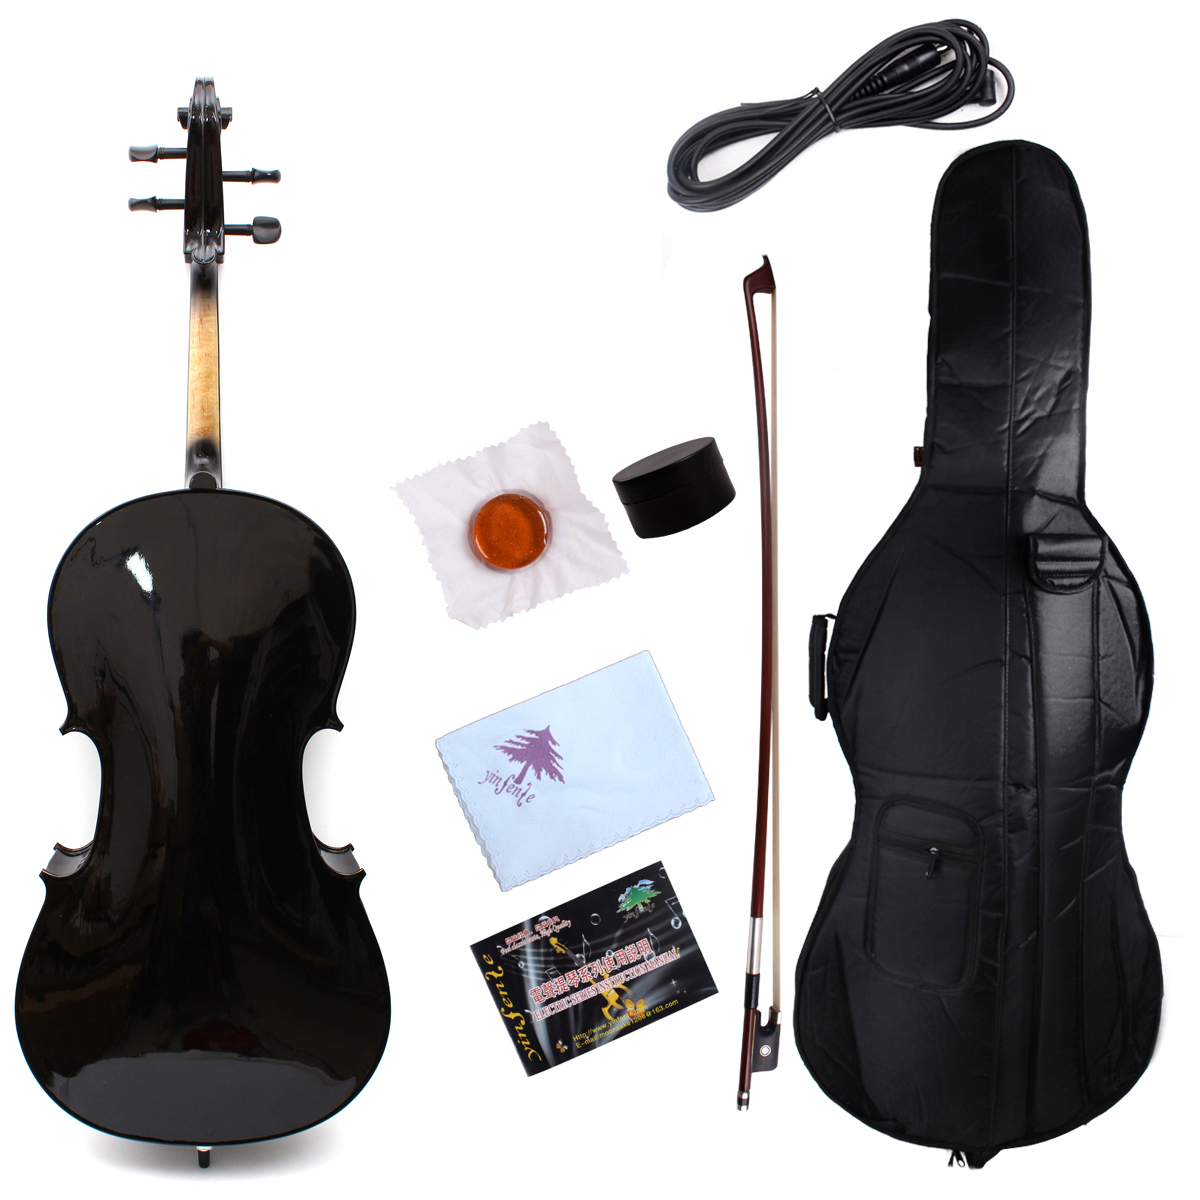 High Quality 4/4 Cello Acoustic Electric Cello Powerful Sound Handmade Nice Maple Spruce Wood Free Cello Bag Bow